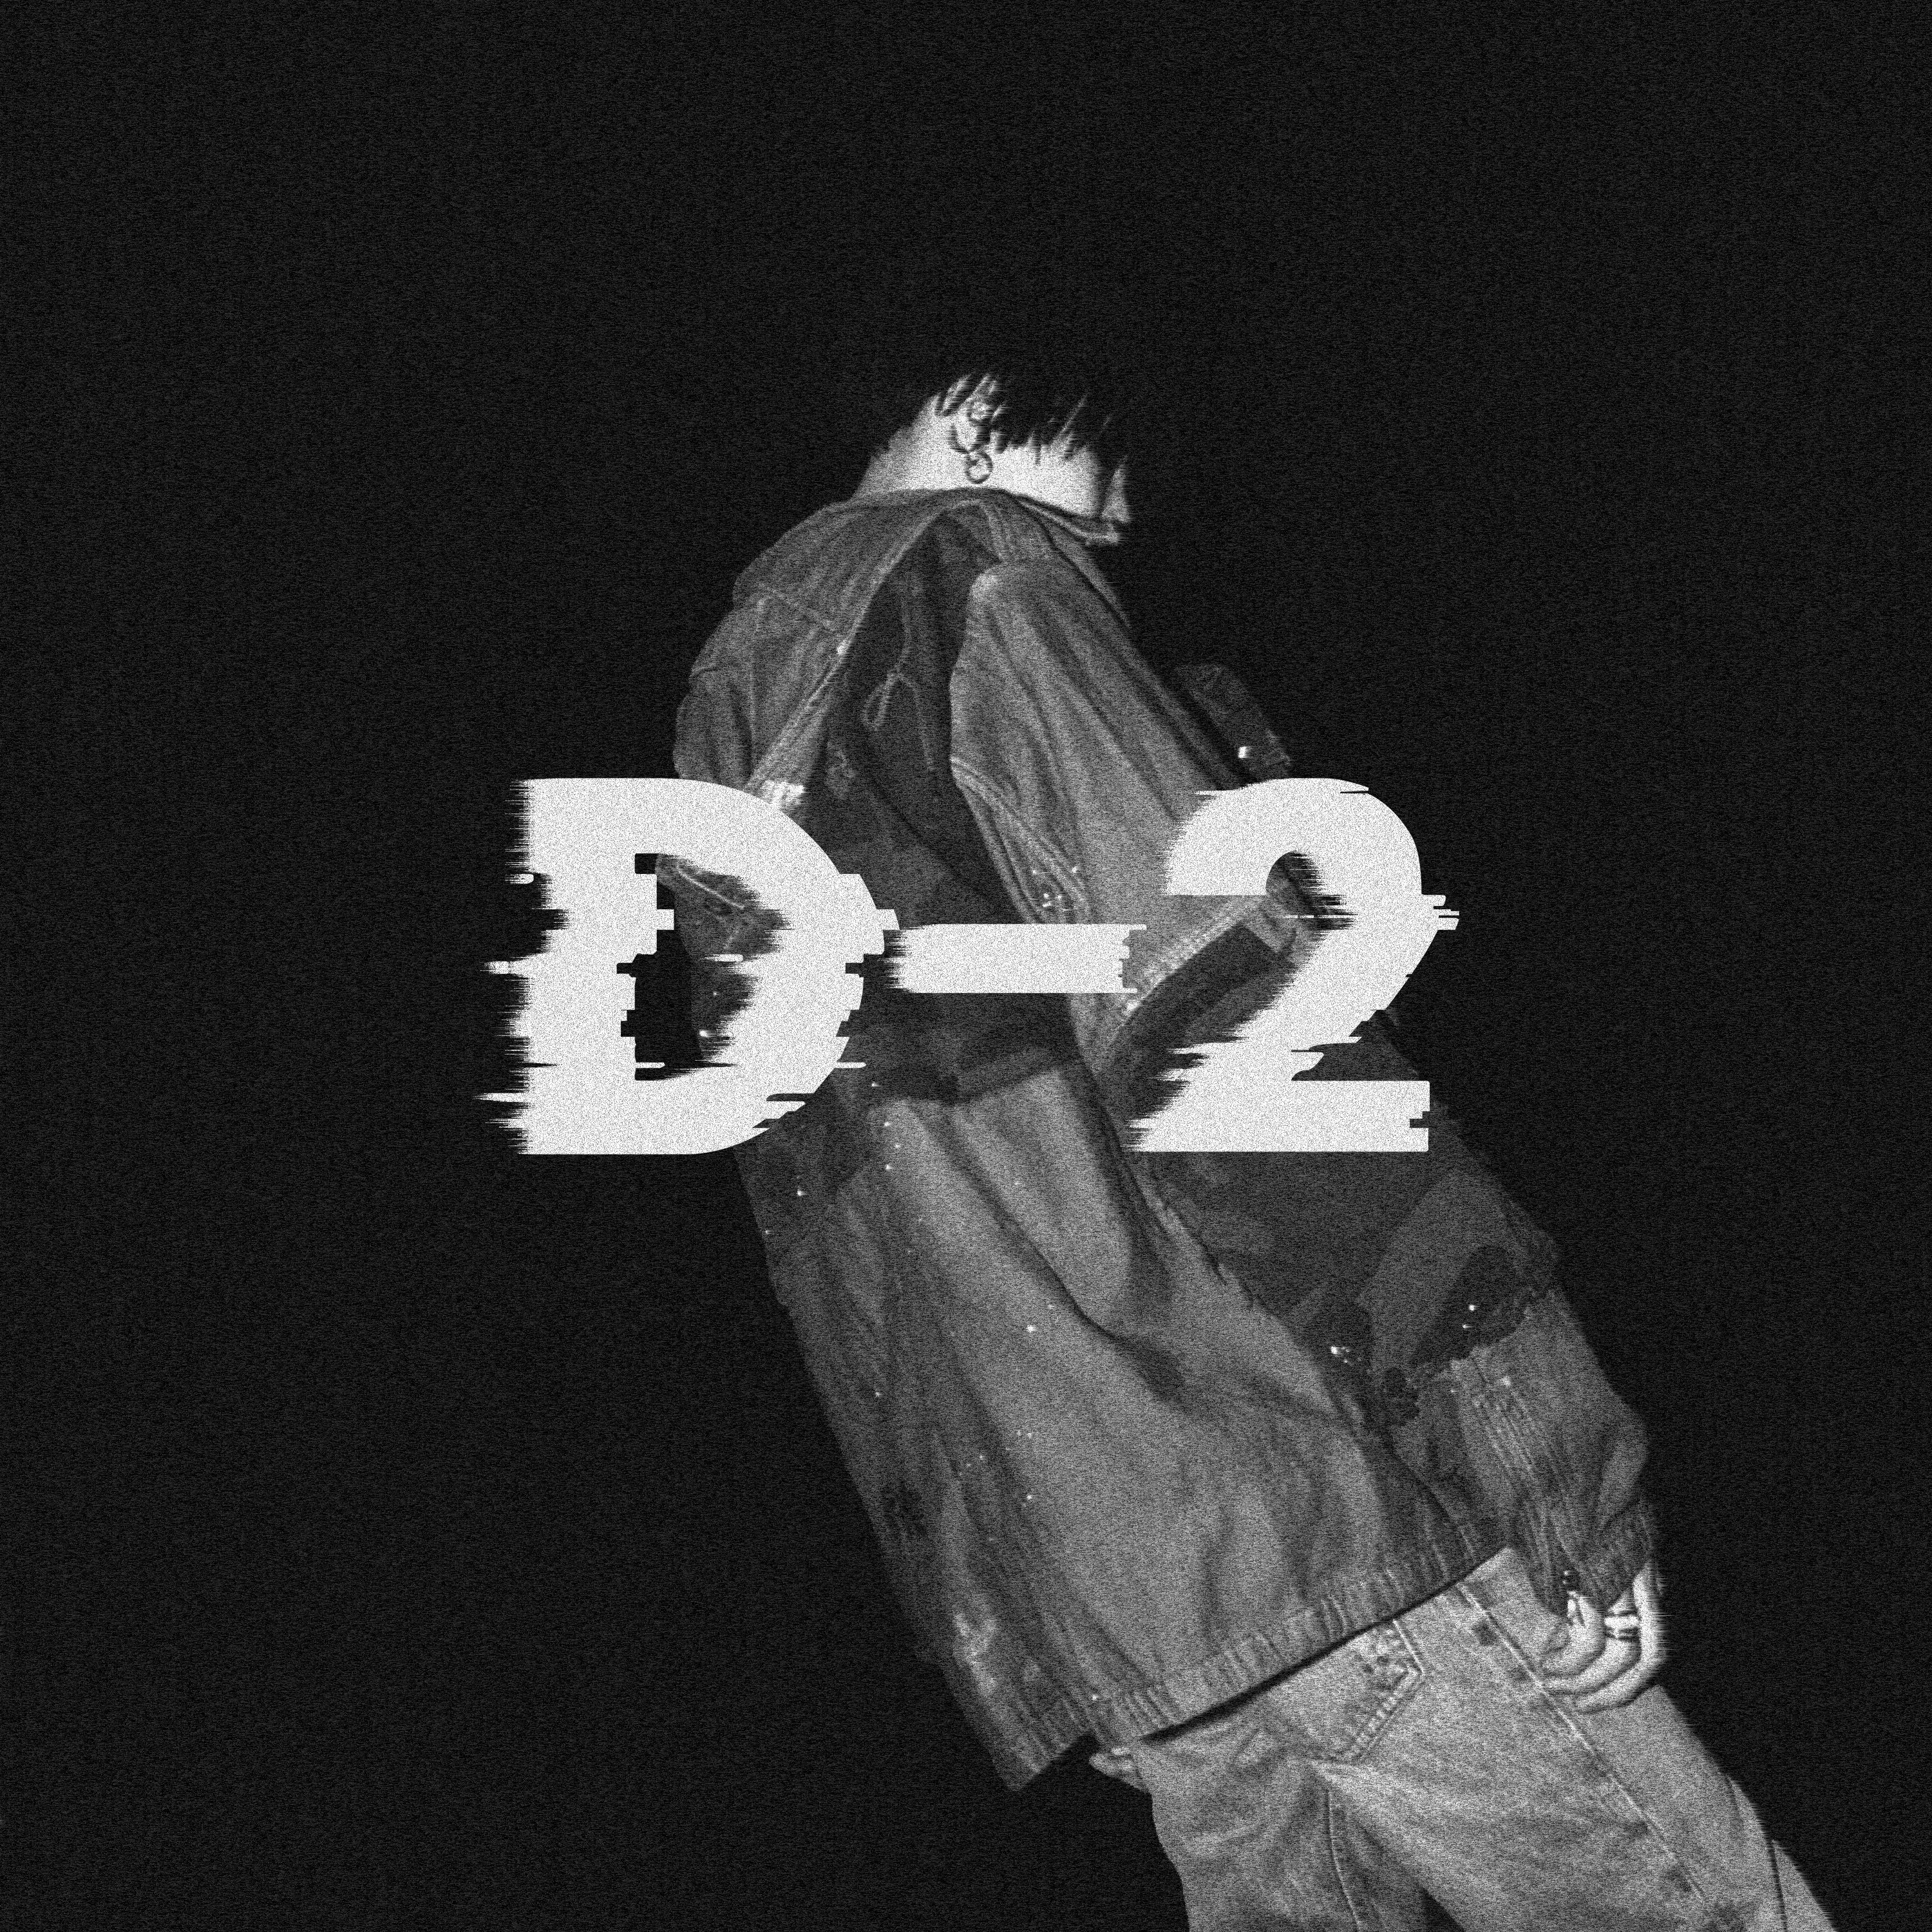 Art for D-2 by Agust D